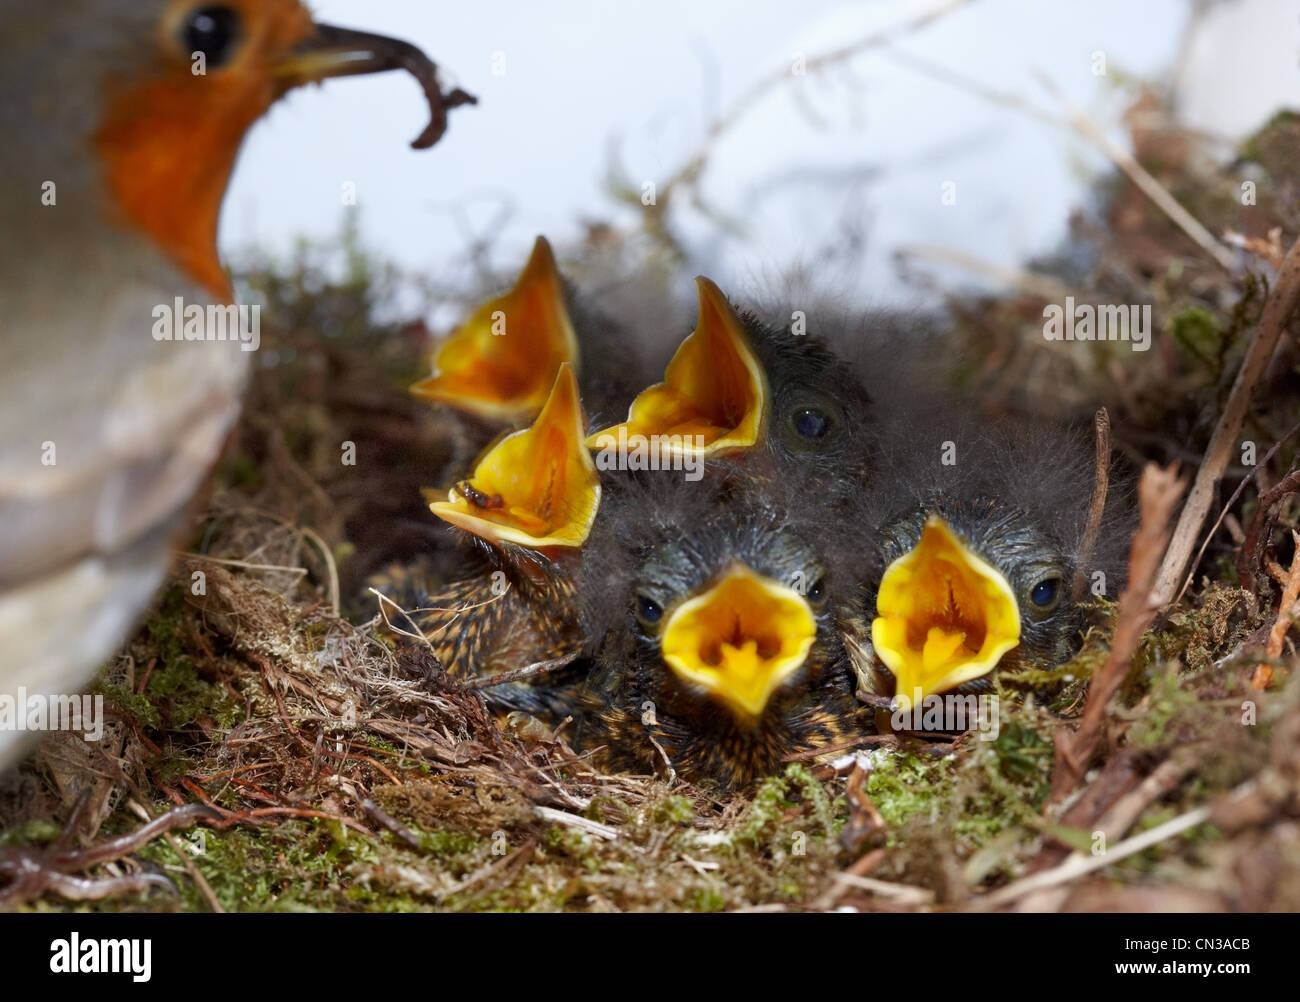 Robin with five chicks in nest - Stock Image